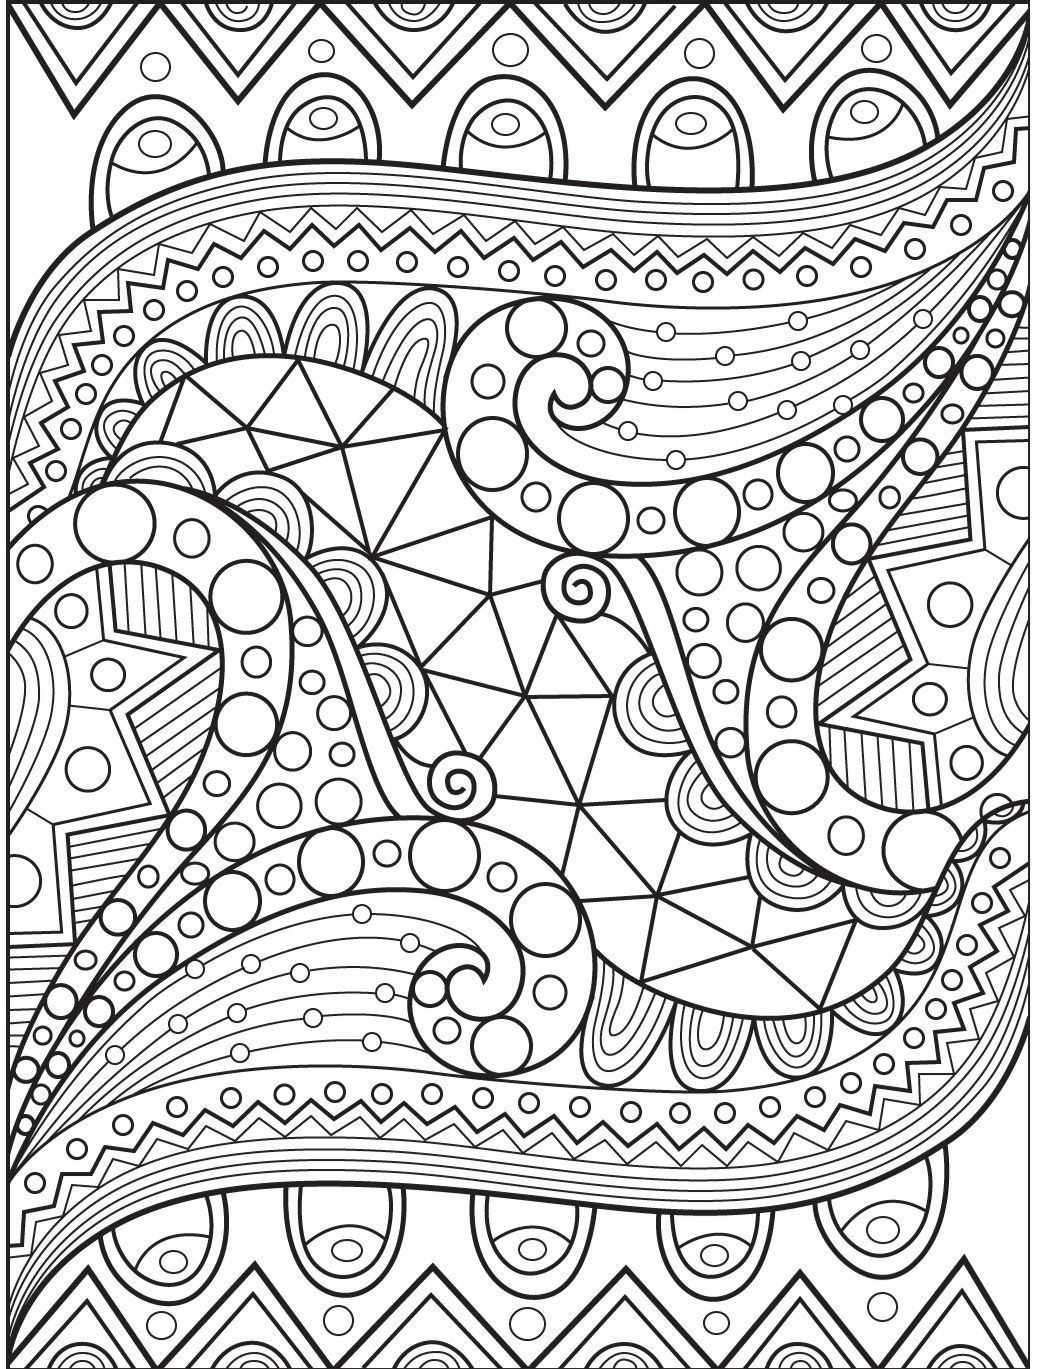 abstract coloring page # 0